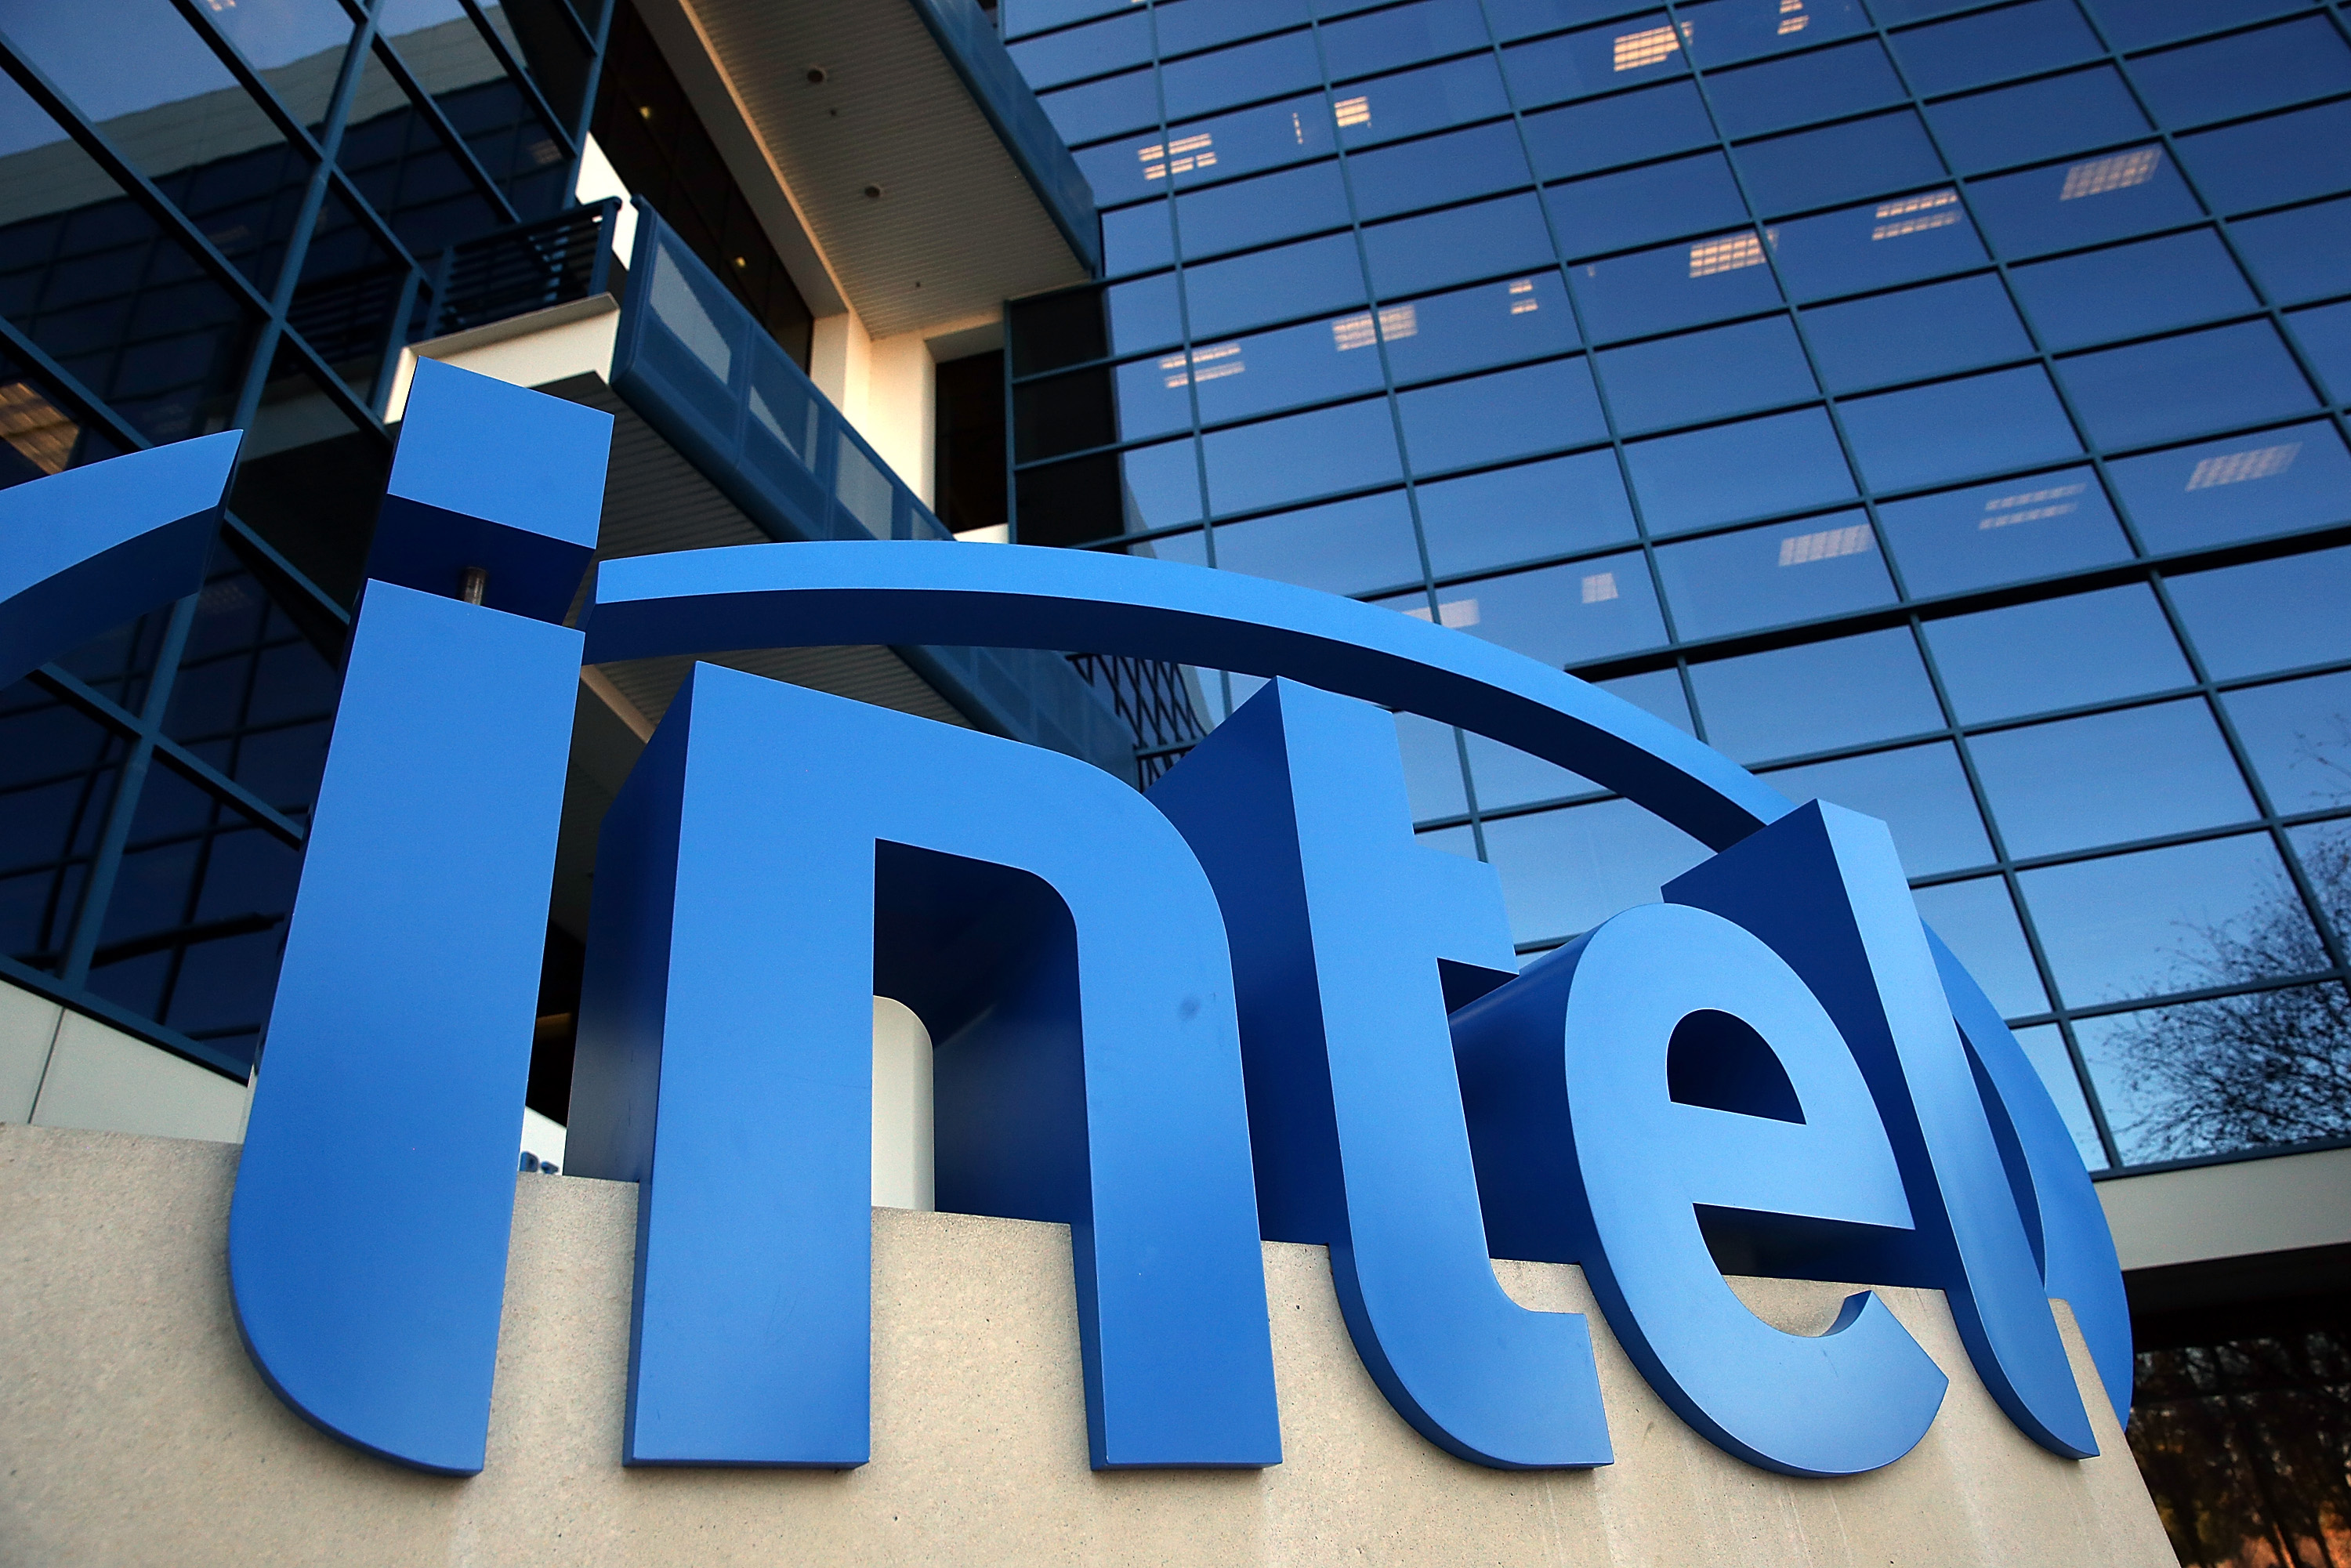 Ferguson Wellman Capital Management Inc. Has $11.12 Million Stake in Intel Co